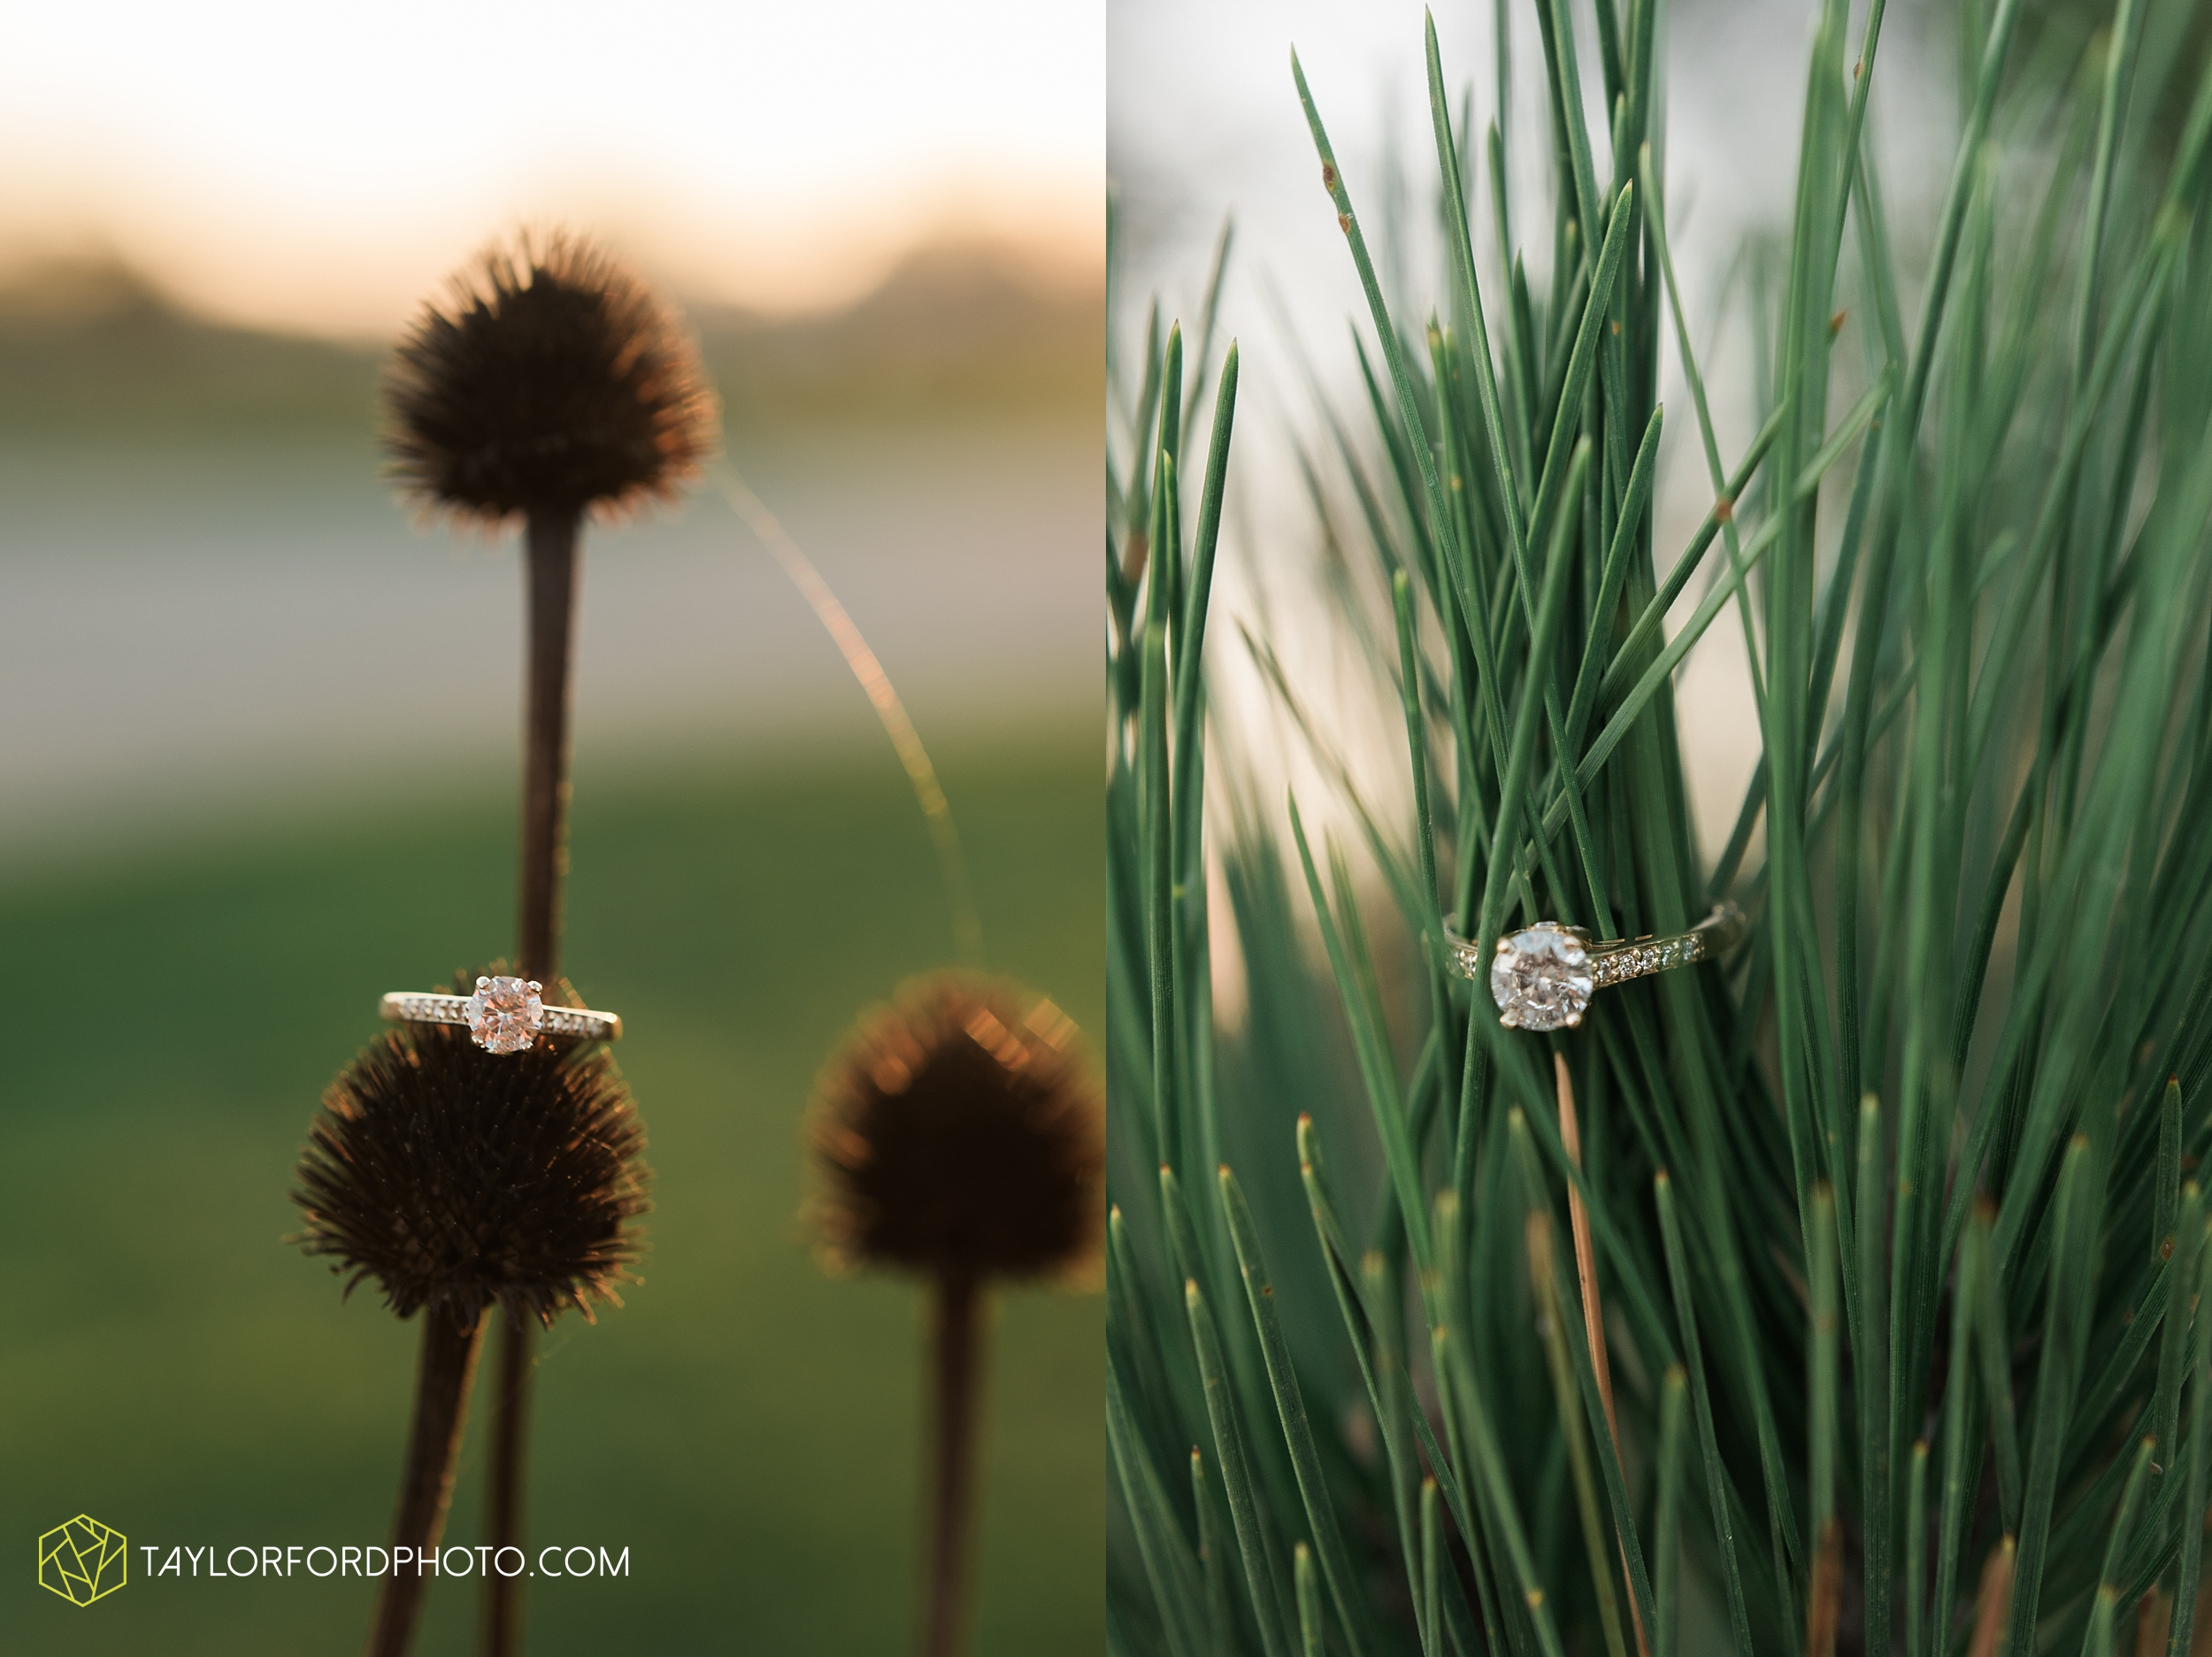 fort-wayne-indiana-engagement-wedding-photographer-Taylor-Ford-Photography-salomon-farm-park_3588.jpg